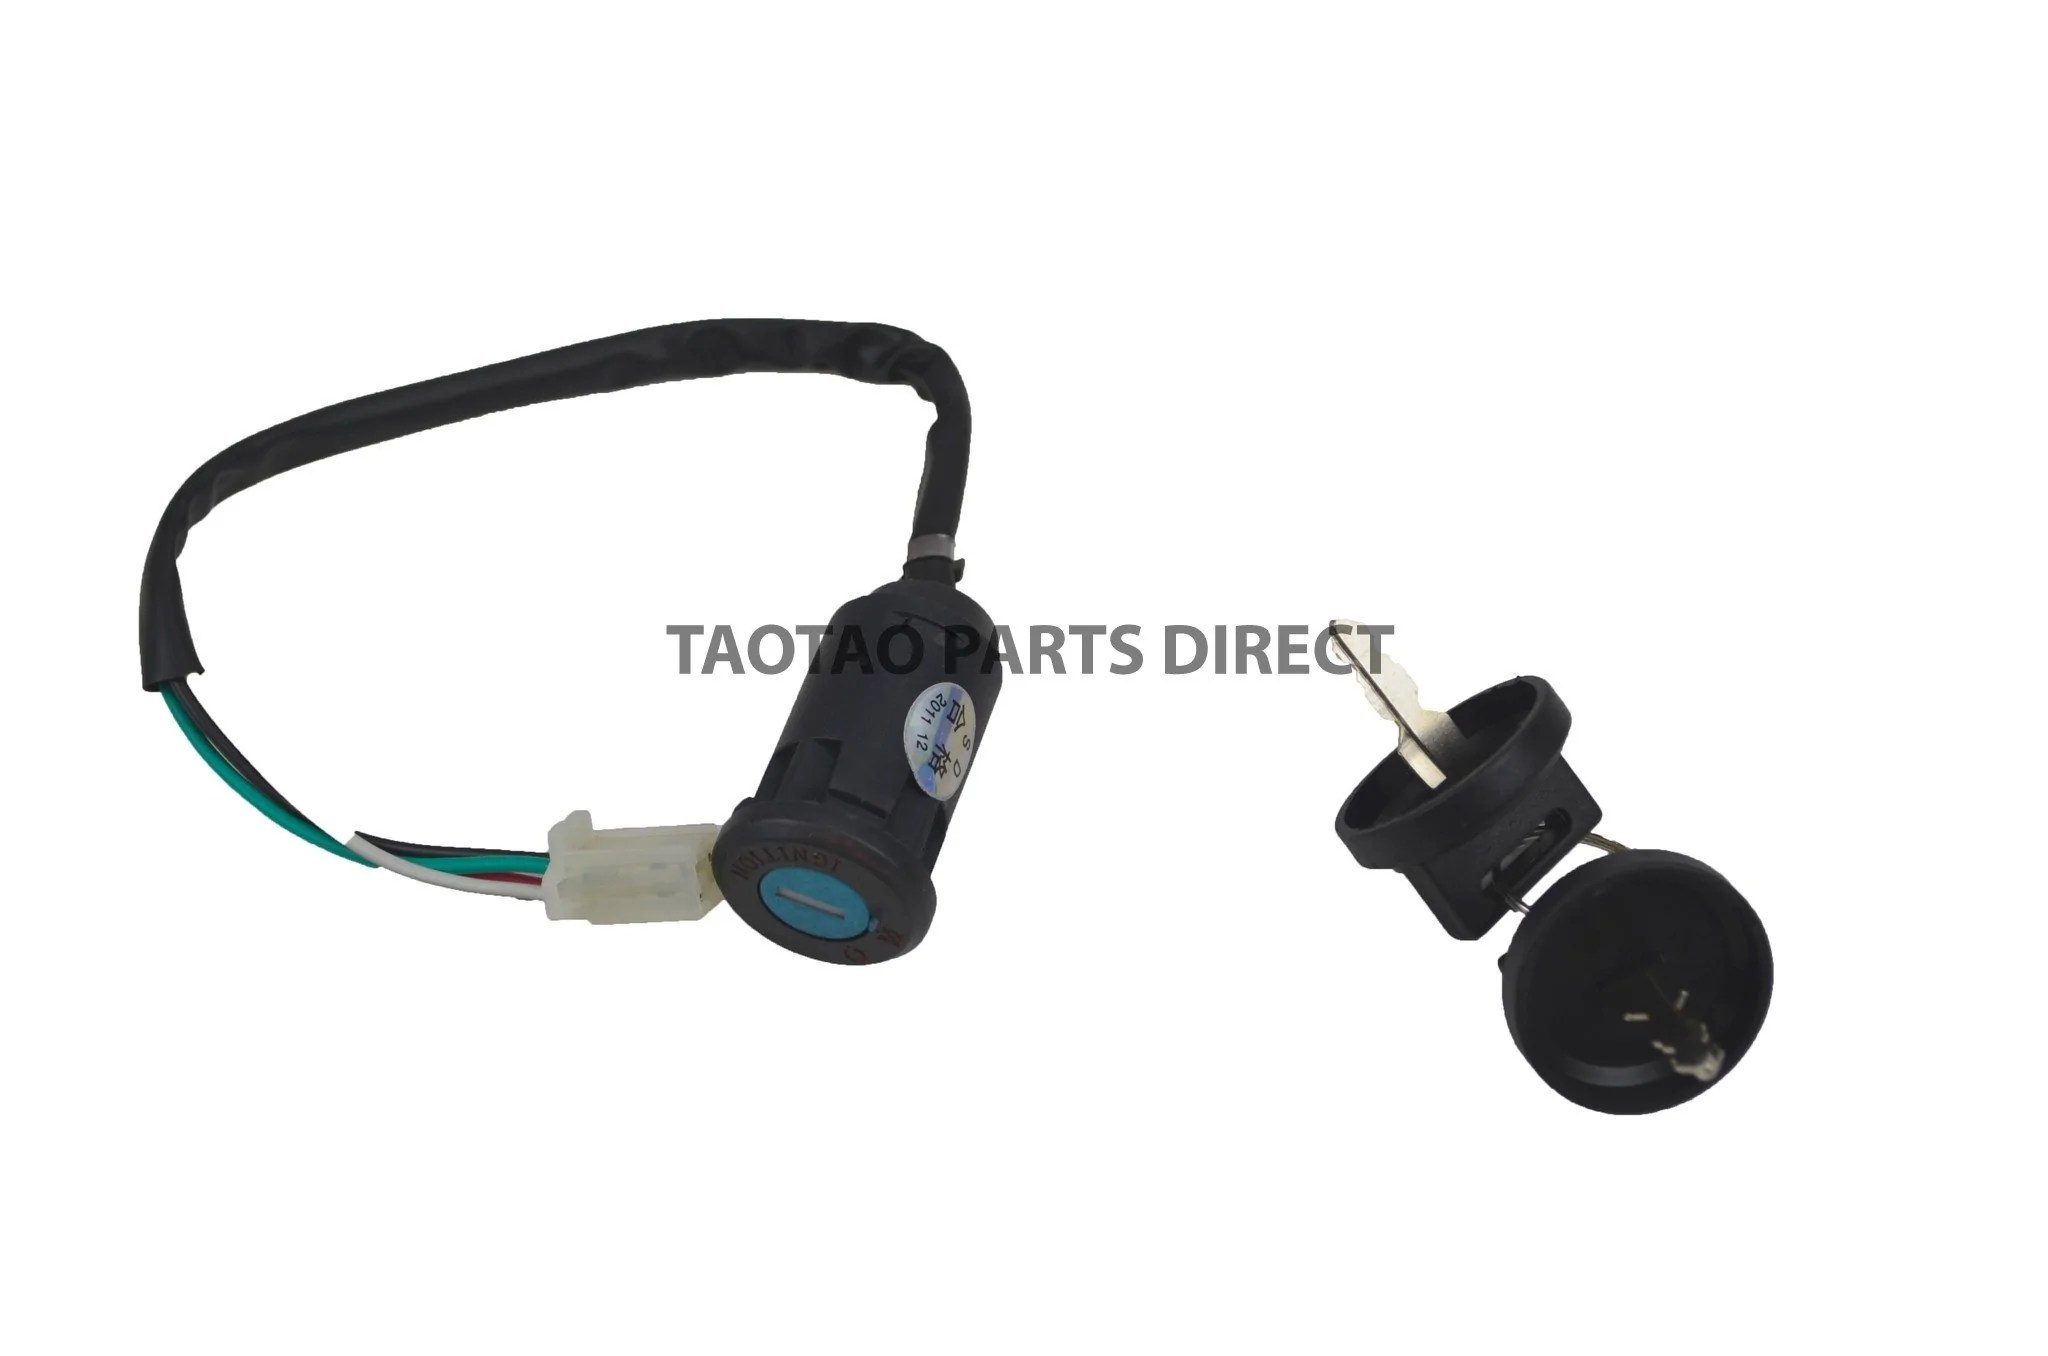 replacement key ignition set for taotao atvs taotao parts direct honda motorcycle ignition wiring diagram atv ignition switch wiring diagram 135 [ 2048 x 1356 Pixel ]